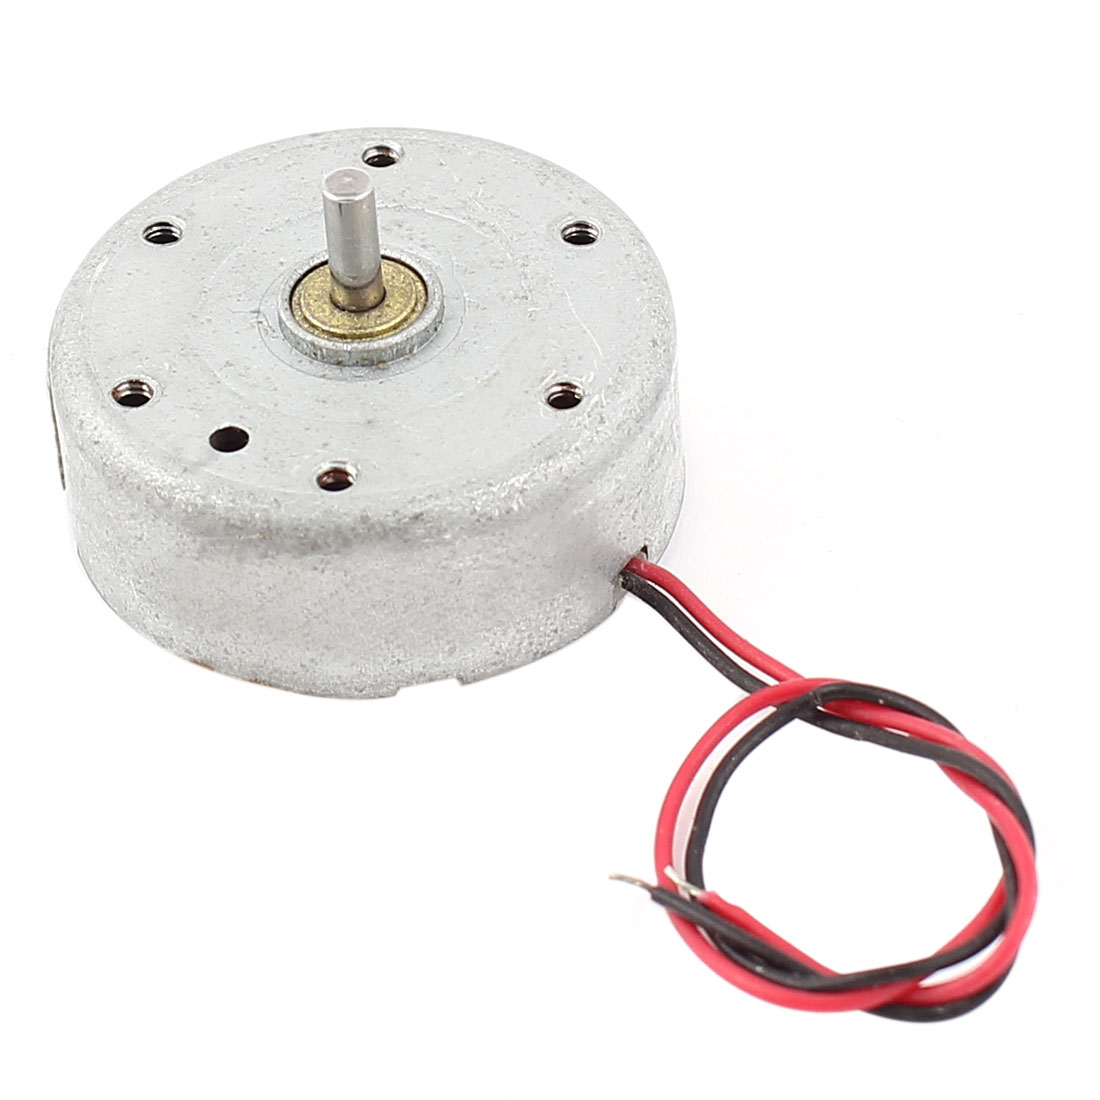 3200RPM 1.5-4.5V High Torque Cylinder Electric Mini DC Motor for CD DVD Player